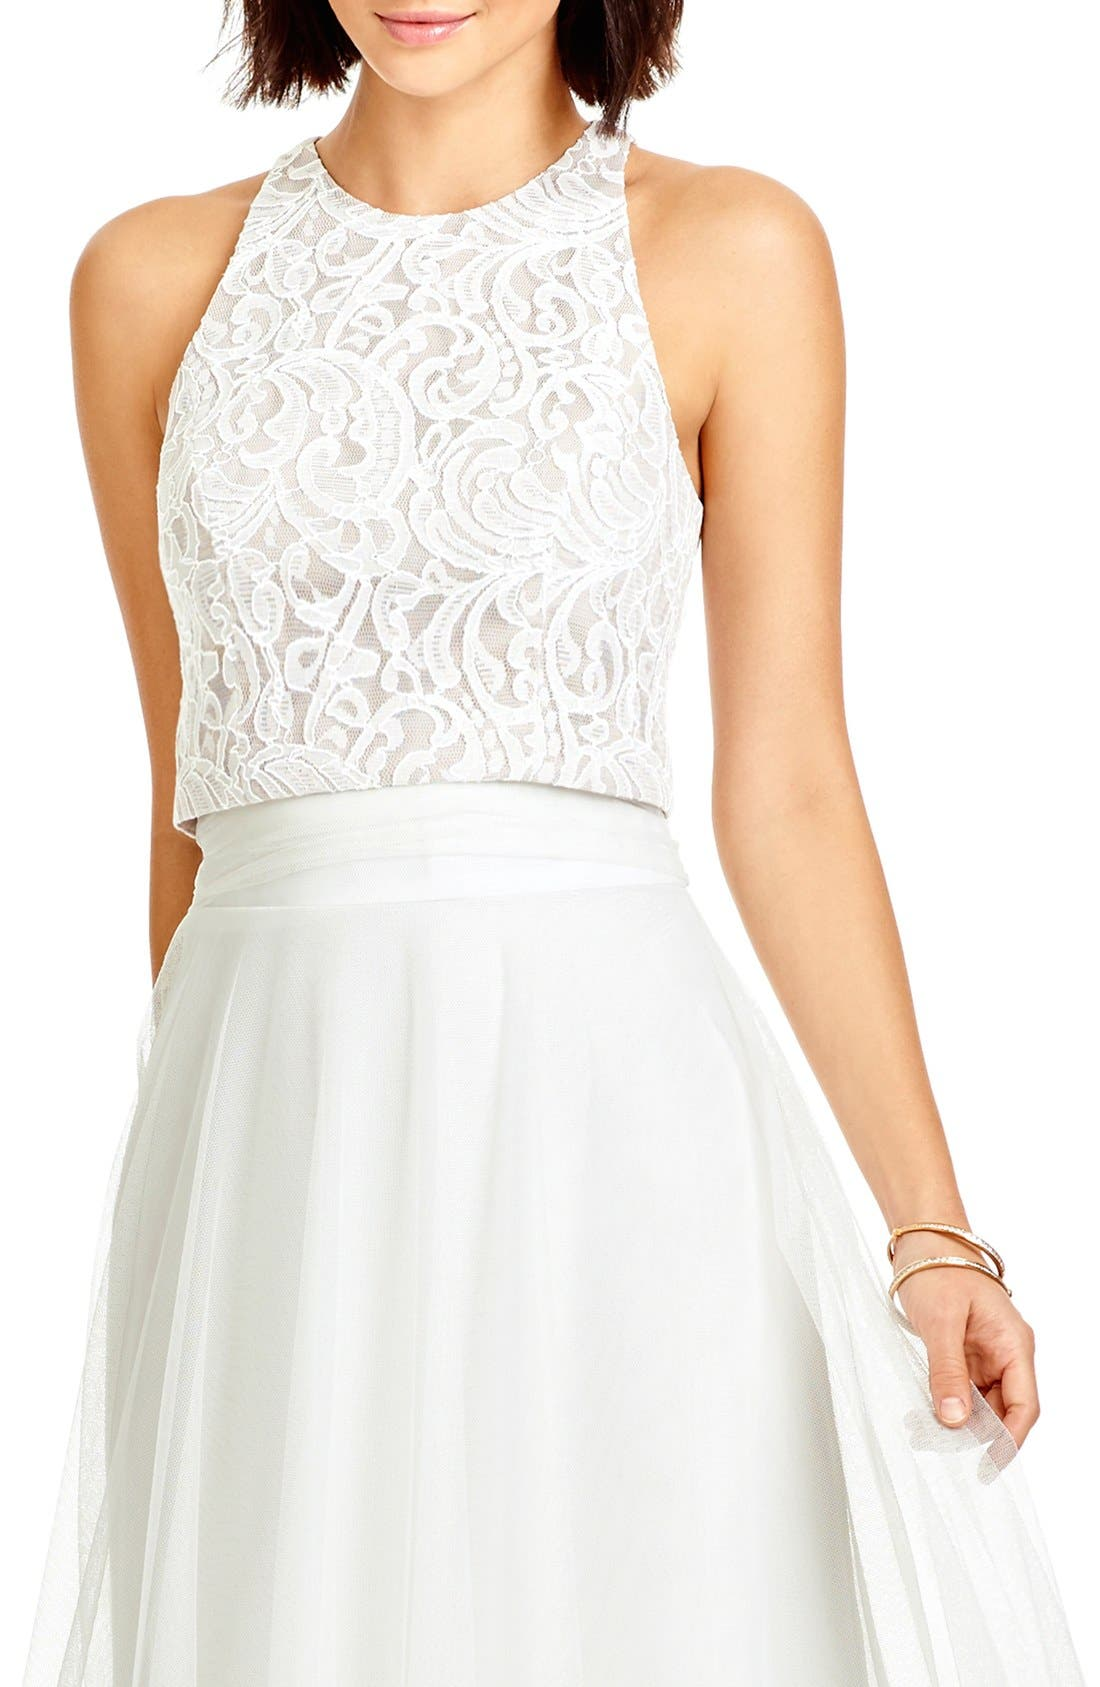 Lace Halter Style Crop Top,                             Alternate thumbnail 4, color,                             IVORY LACE/ TOPAZ/ IVORY